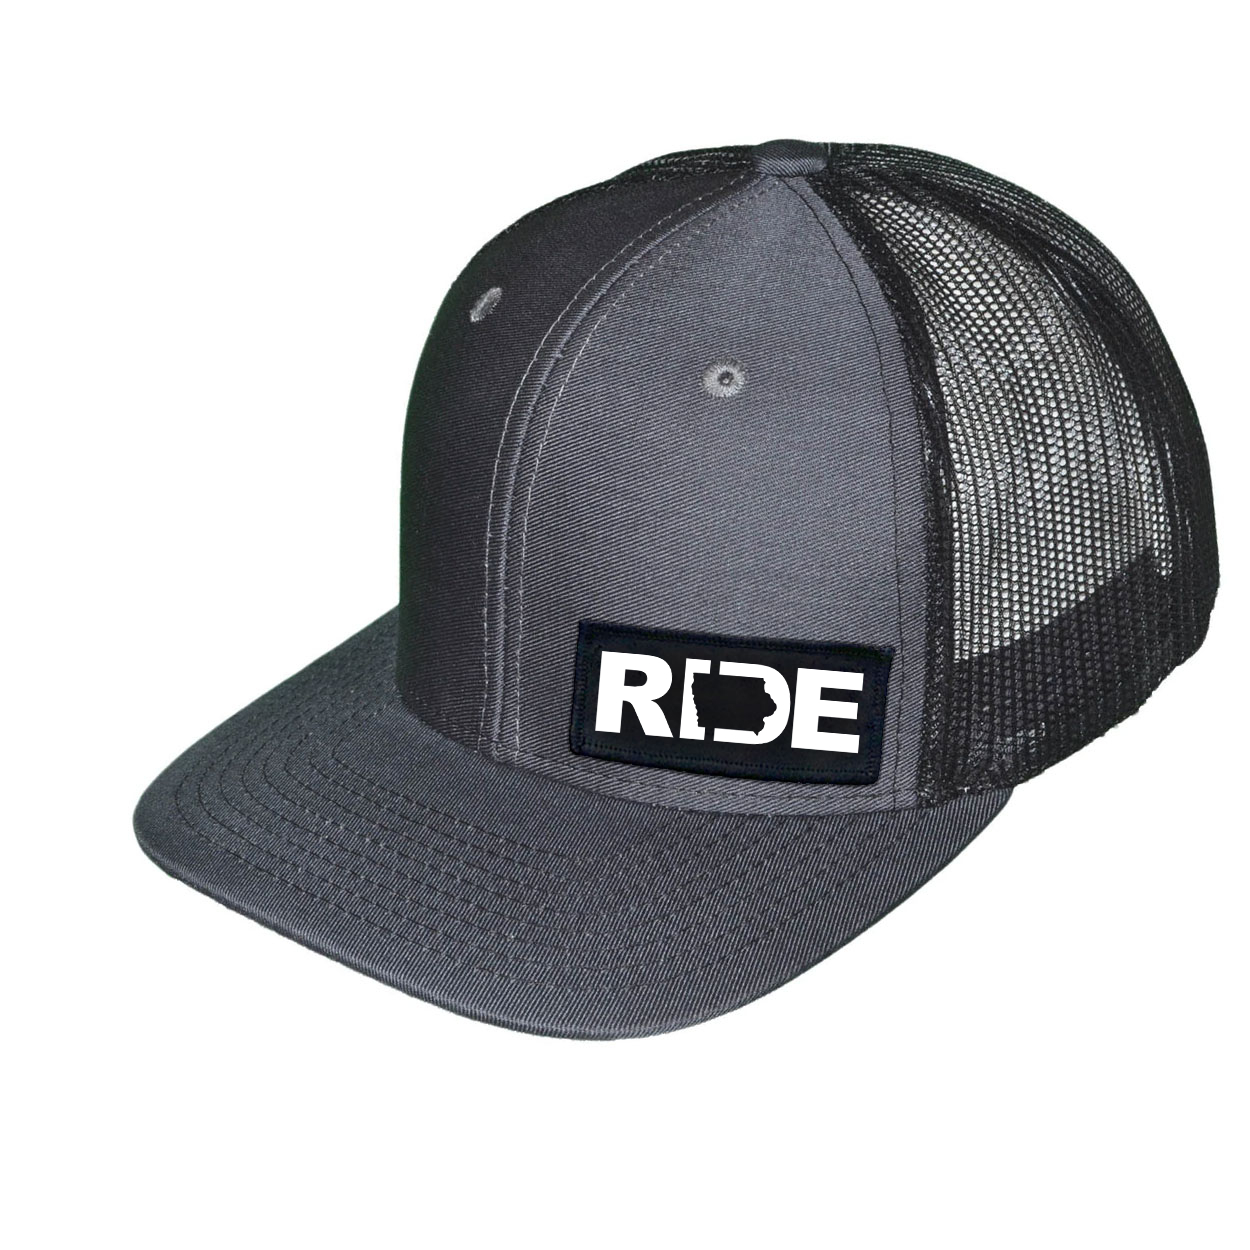 Ride Iowa Night Out Woven Patch Snapback Trucker Hat Dark Gray/Black (White Logo)